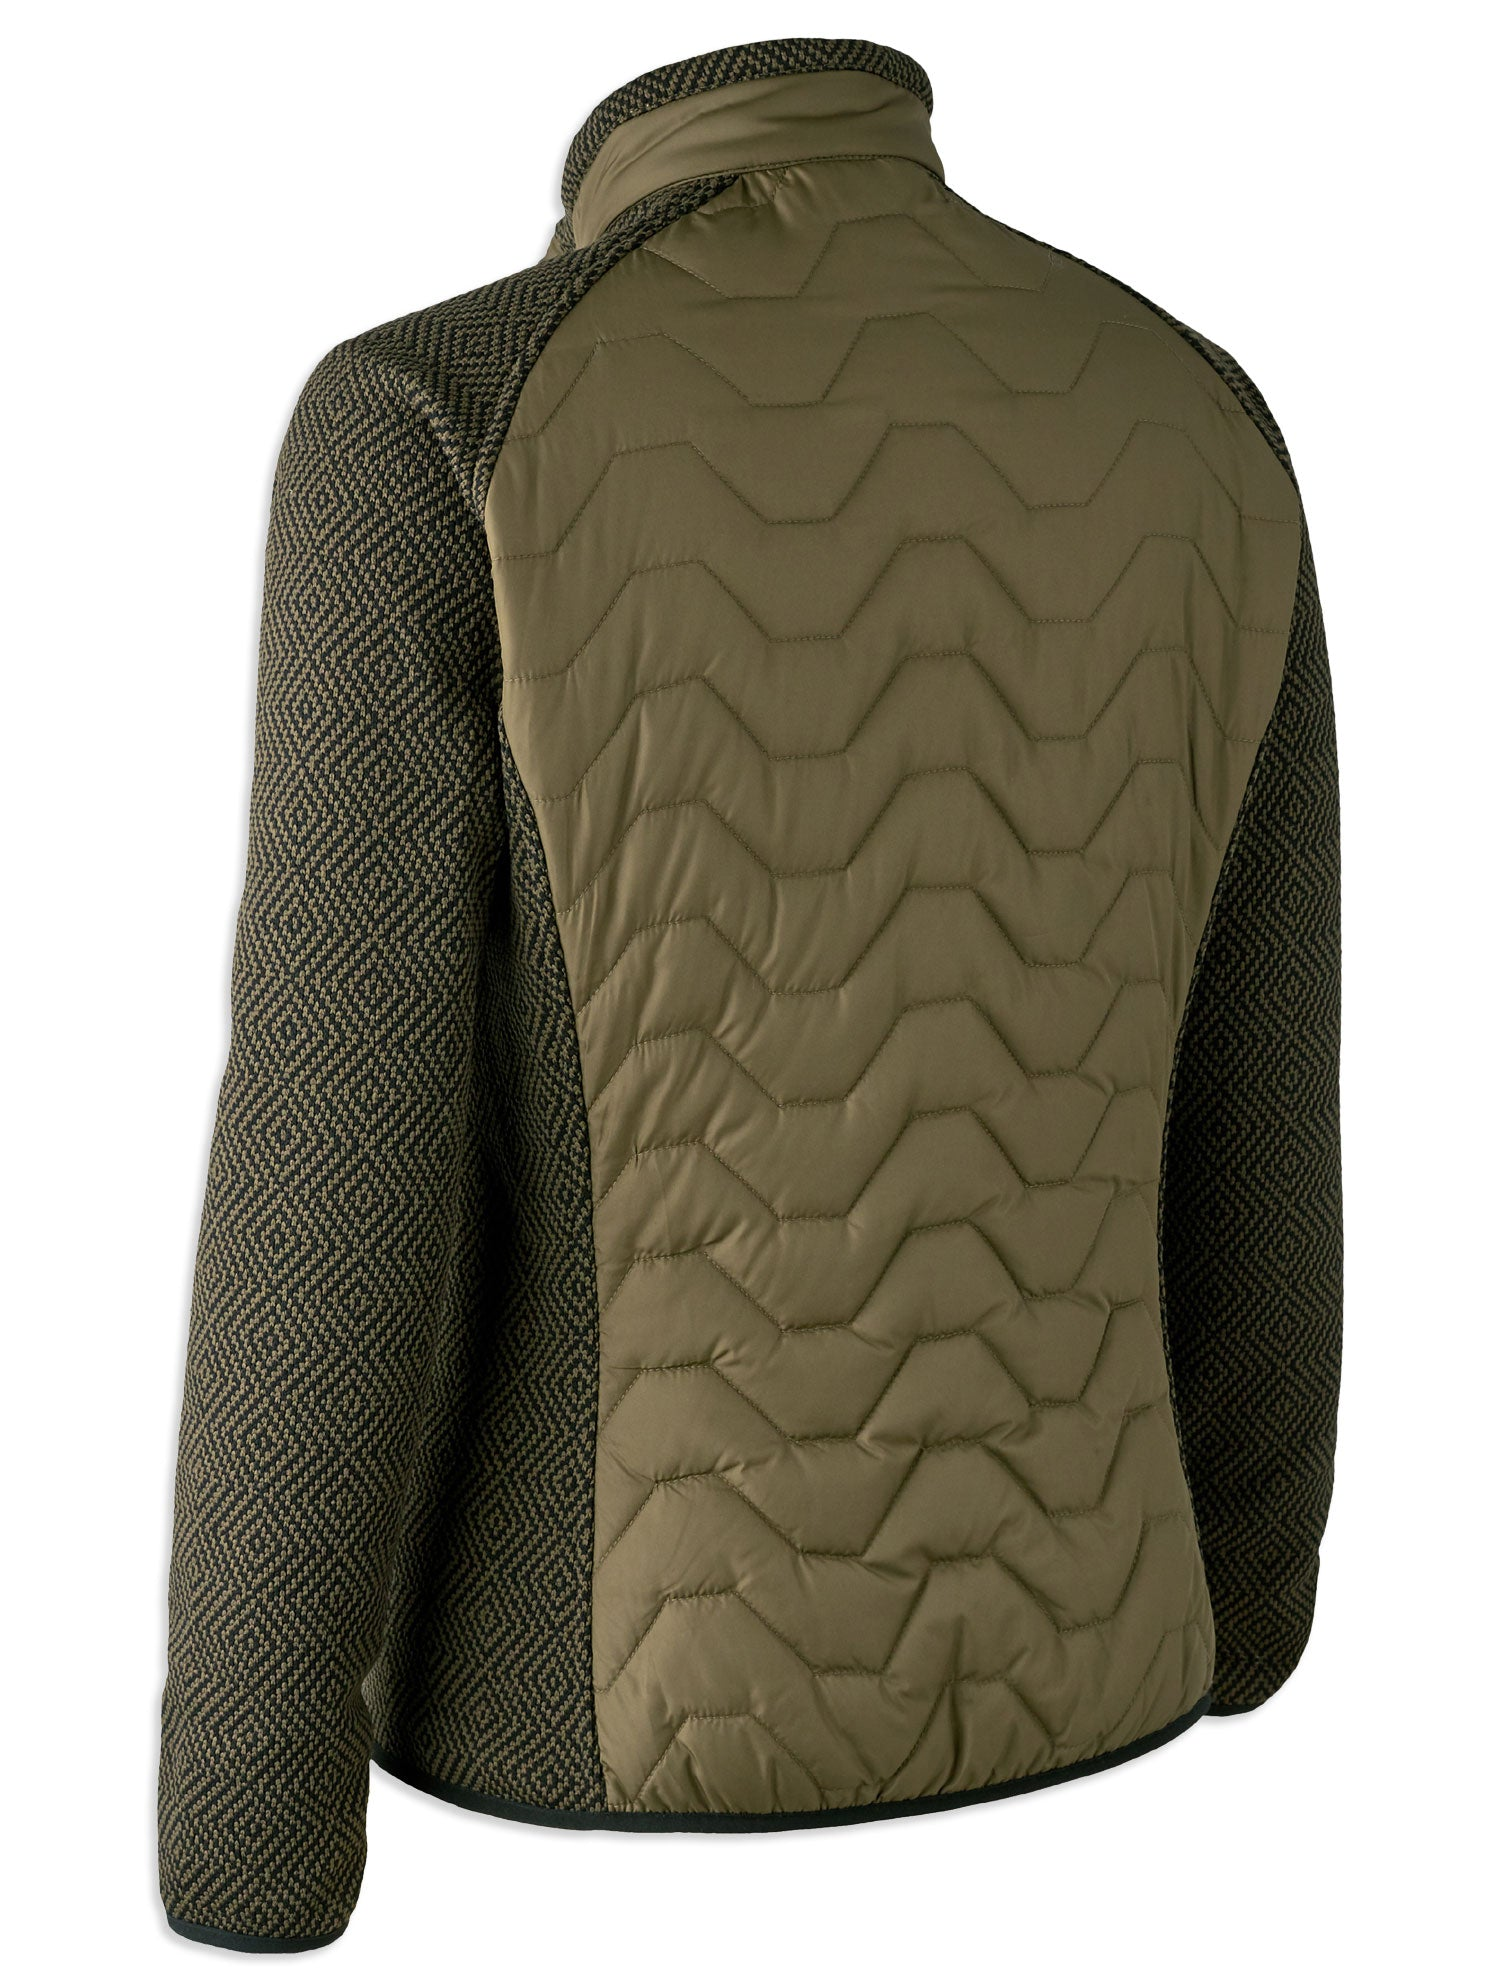 Lady Beth Quilted Jacket with Knit Sleeves by Deerhunter